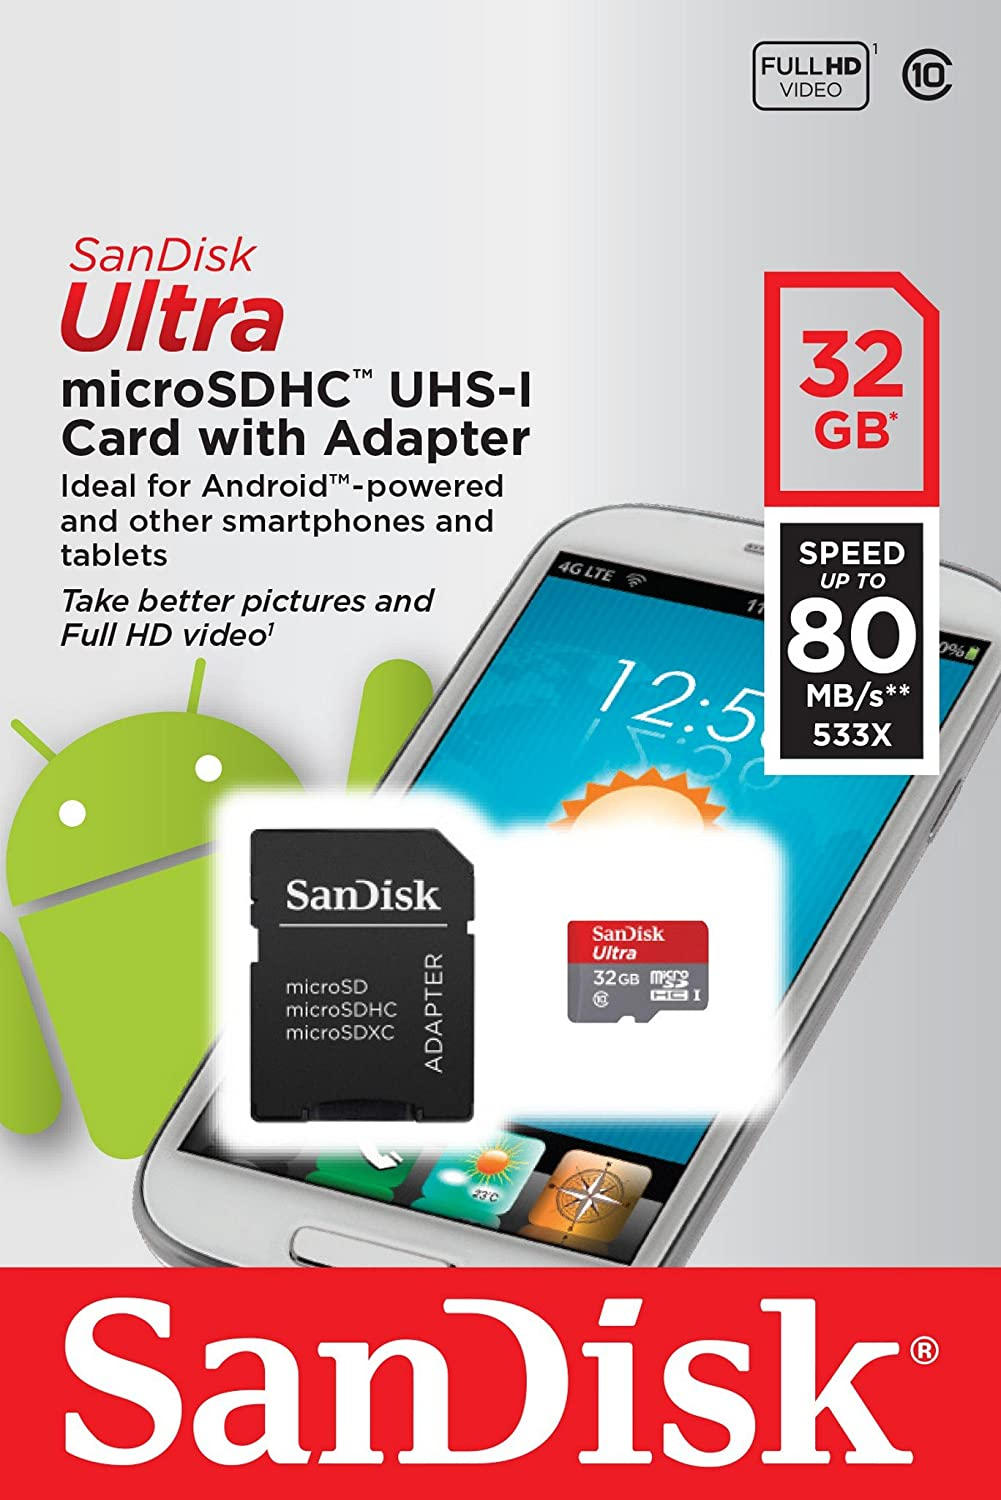 SanDisk Ultra 32GB microSDHC UHS-I Card with Adapter, Silver, Standard Packaging (SDSQUNC-032G-GN6MA)